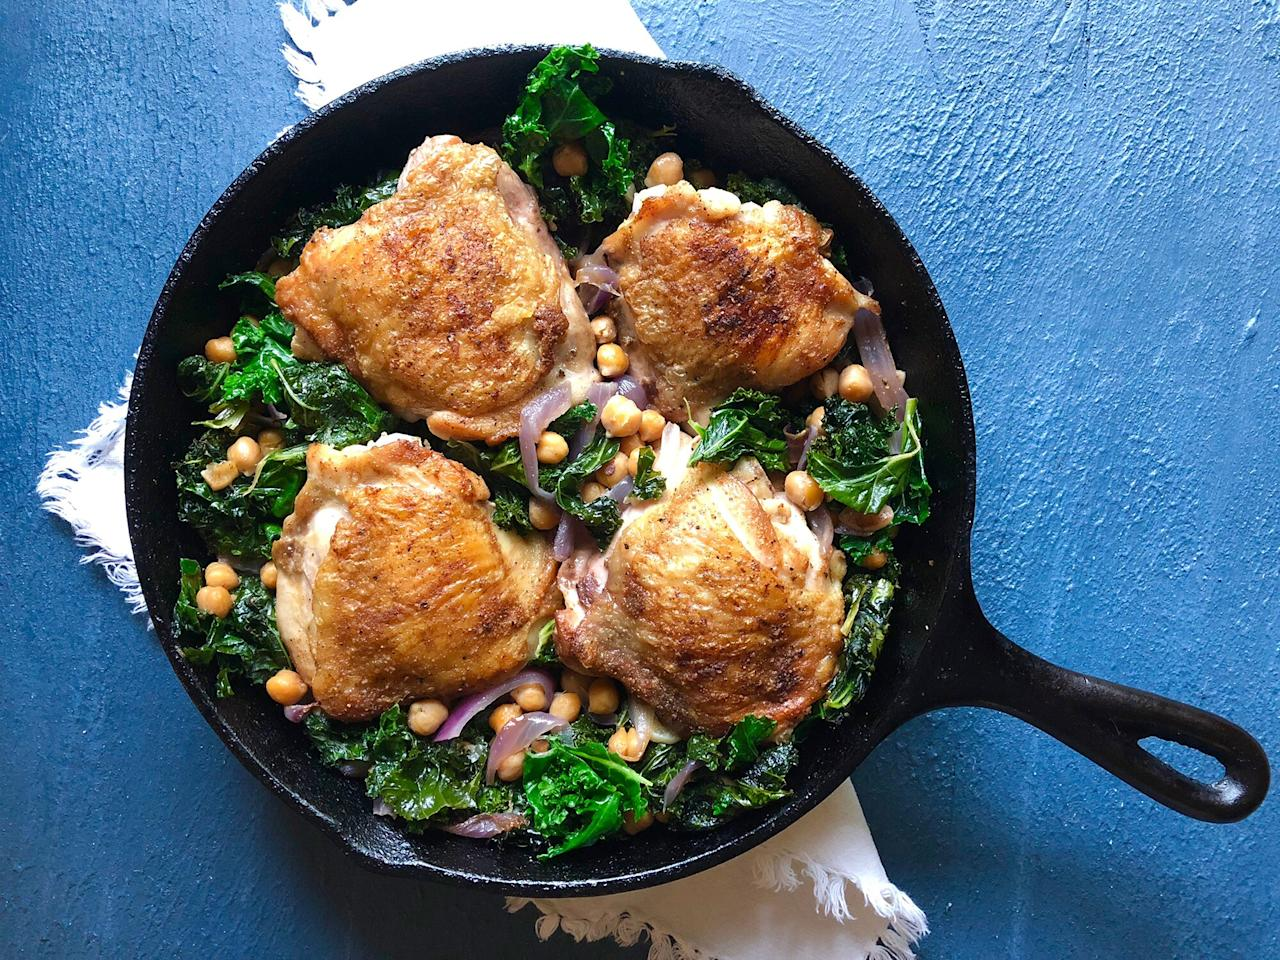 """<p>You could complicate things if you wanted to, but why bother when the simple way tastes so great? Not counting salt, pepper, and oil, this recipe contains just six ingredients—and tastes like a million bucks. That's because the lightly seasoned chicken releases all its chicken-y goodness into the skillet, where onions, garlic, kale, and chickpeas lap it up so that none of the rich poultry flavor goes to waste. If you can, purchase air-chilled and/or organic chicken thighs. Since chicken is the star here, you want the best you can find. </p> <p> <a href=""""https://www.cookinglight.com/recipes/crispy-chicken-thighs-kale-chickpeas"""">View Recipe: Crispy Chicken Thighs With Kale and Chickpeas</a></p>"""